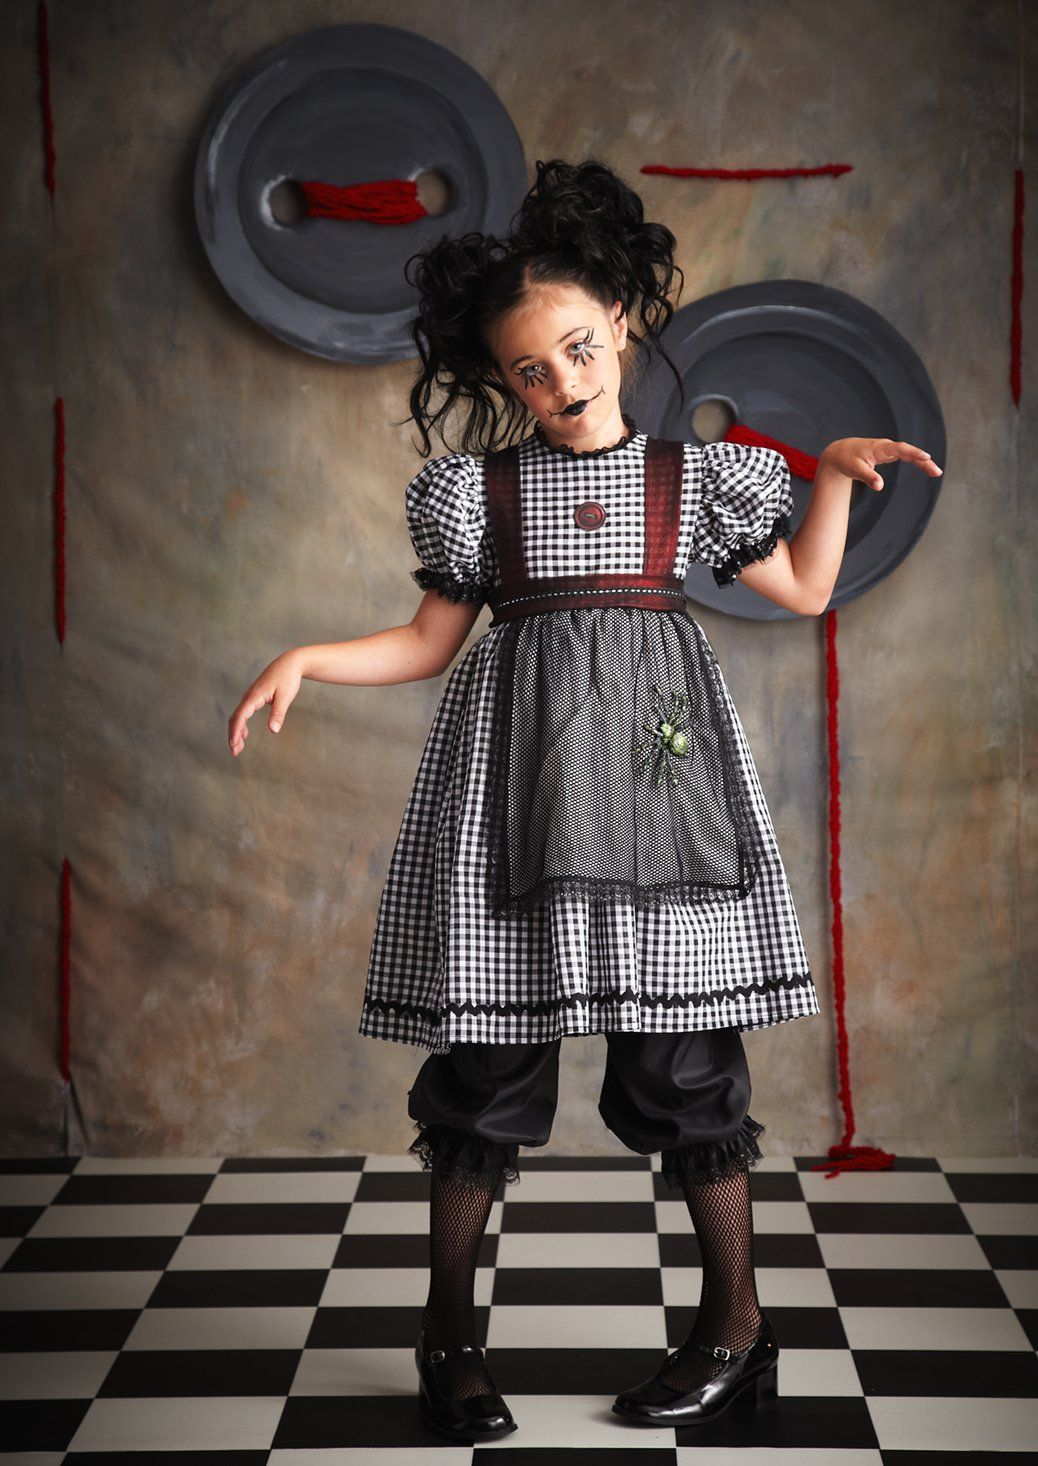 Gothic+Rag+Doll+Kids+Costume from Rag